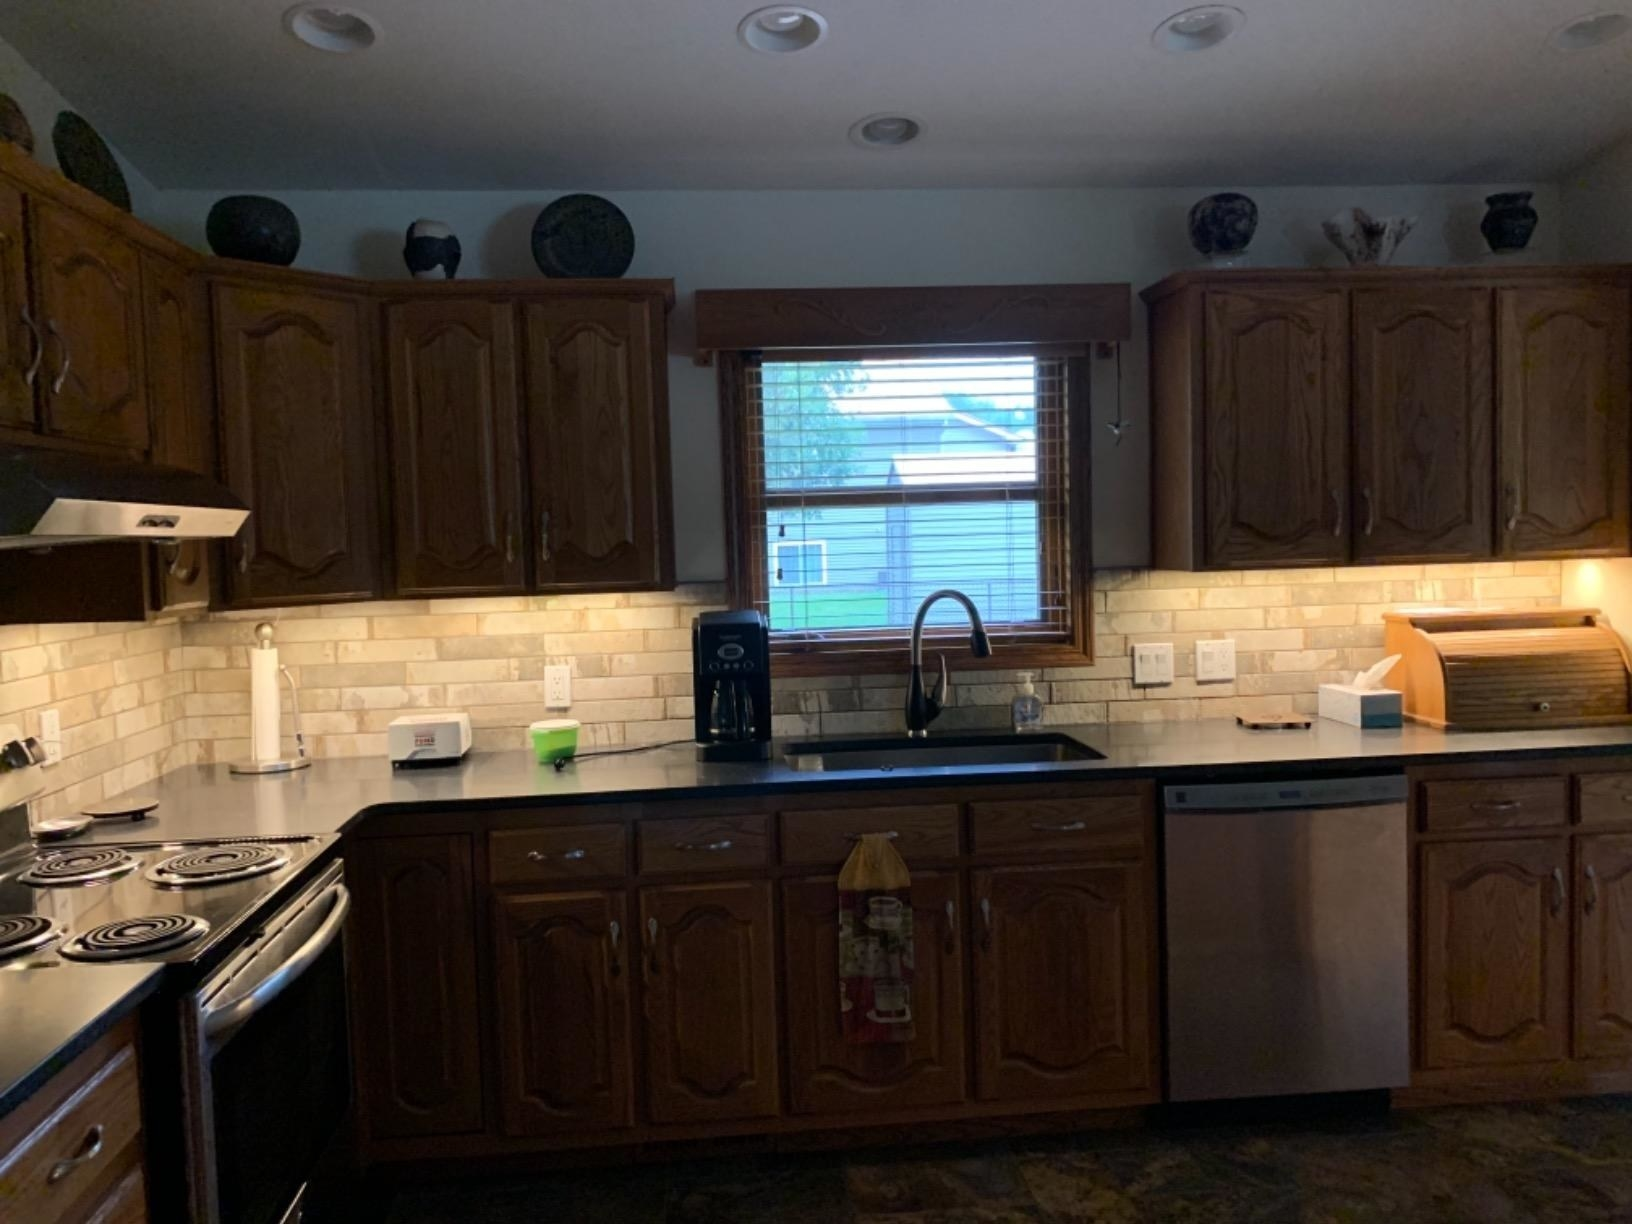 reviewer image of under cabinet LED lights turned on in a customer's kitchen